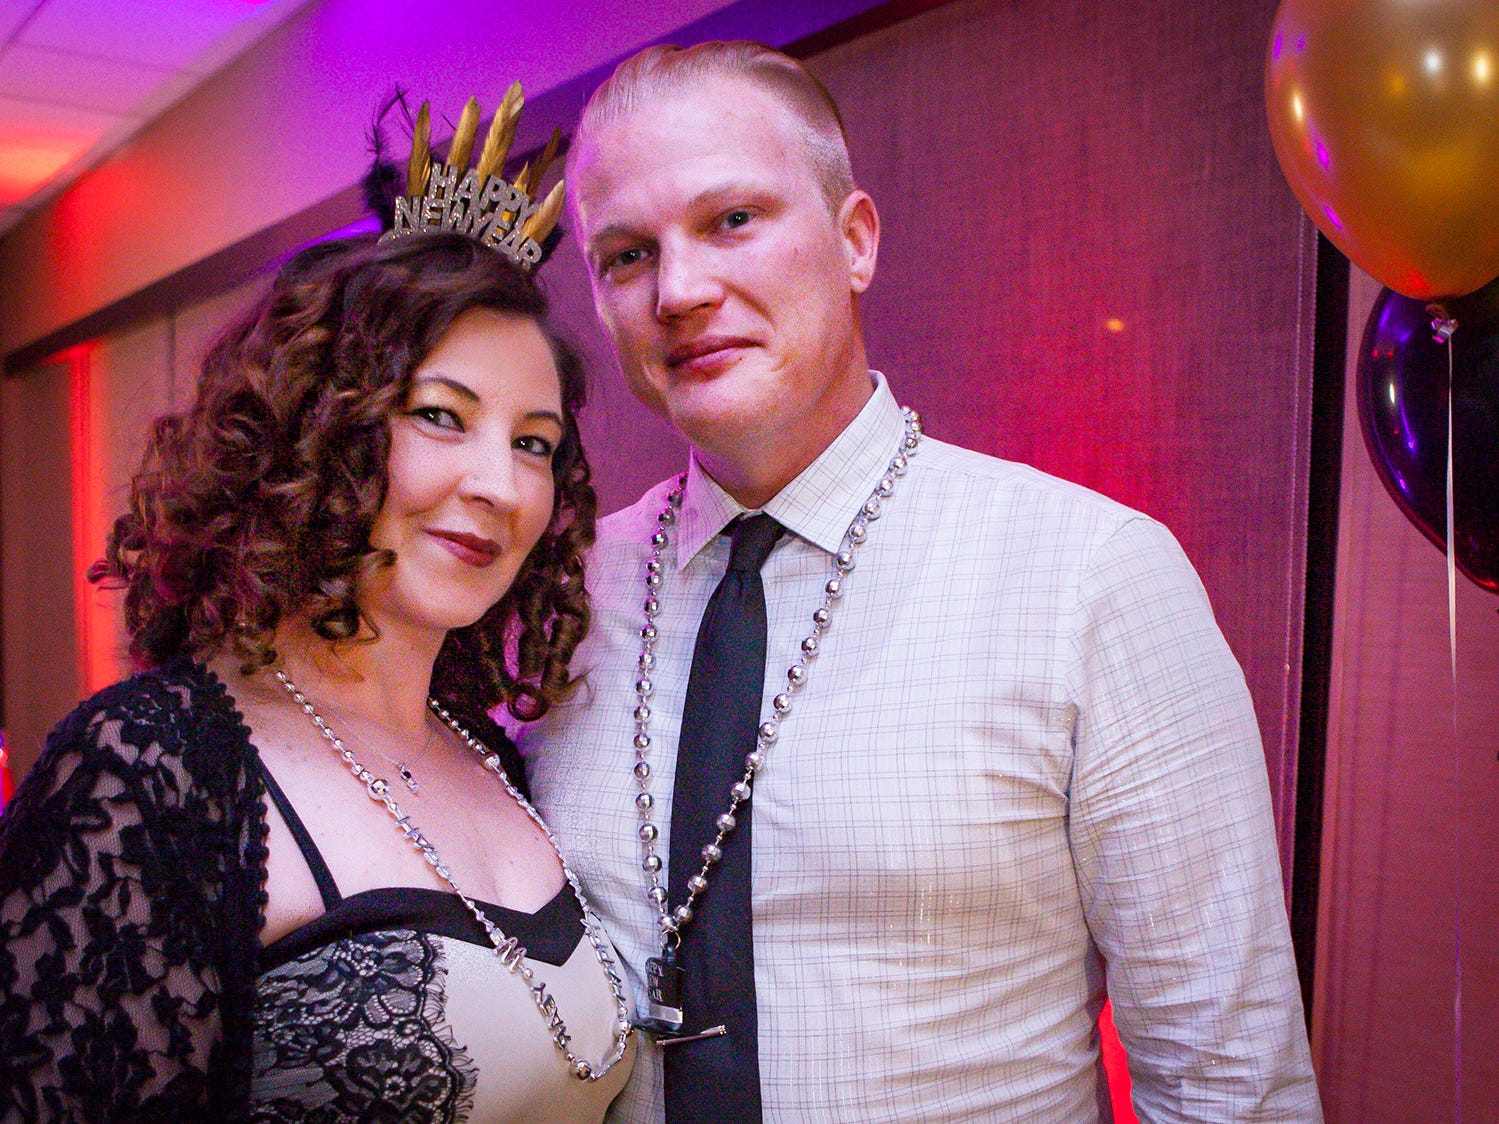 Crystal Smith and Joseph Jones at the Pyramid Foundation's Shimmer and Shine New Year's Eve party, held at DoubleTree Hotel in Murfreesboro.